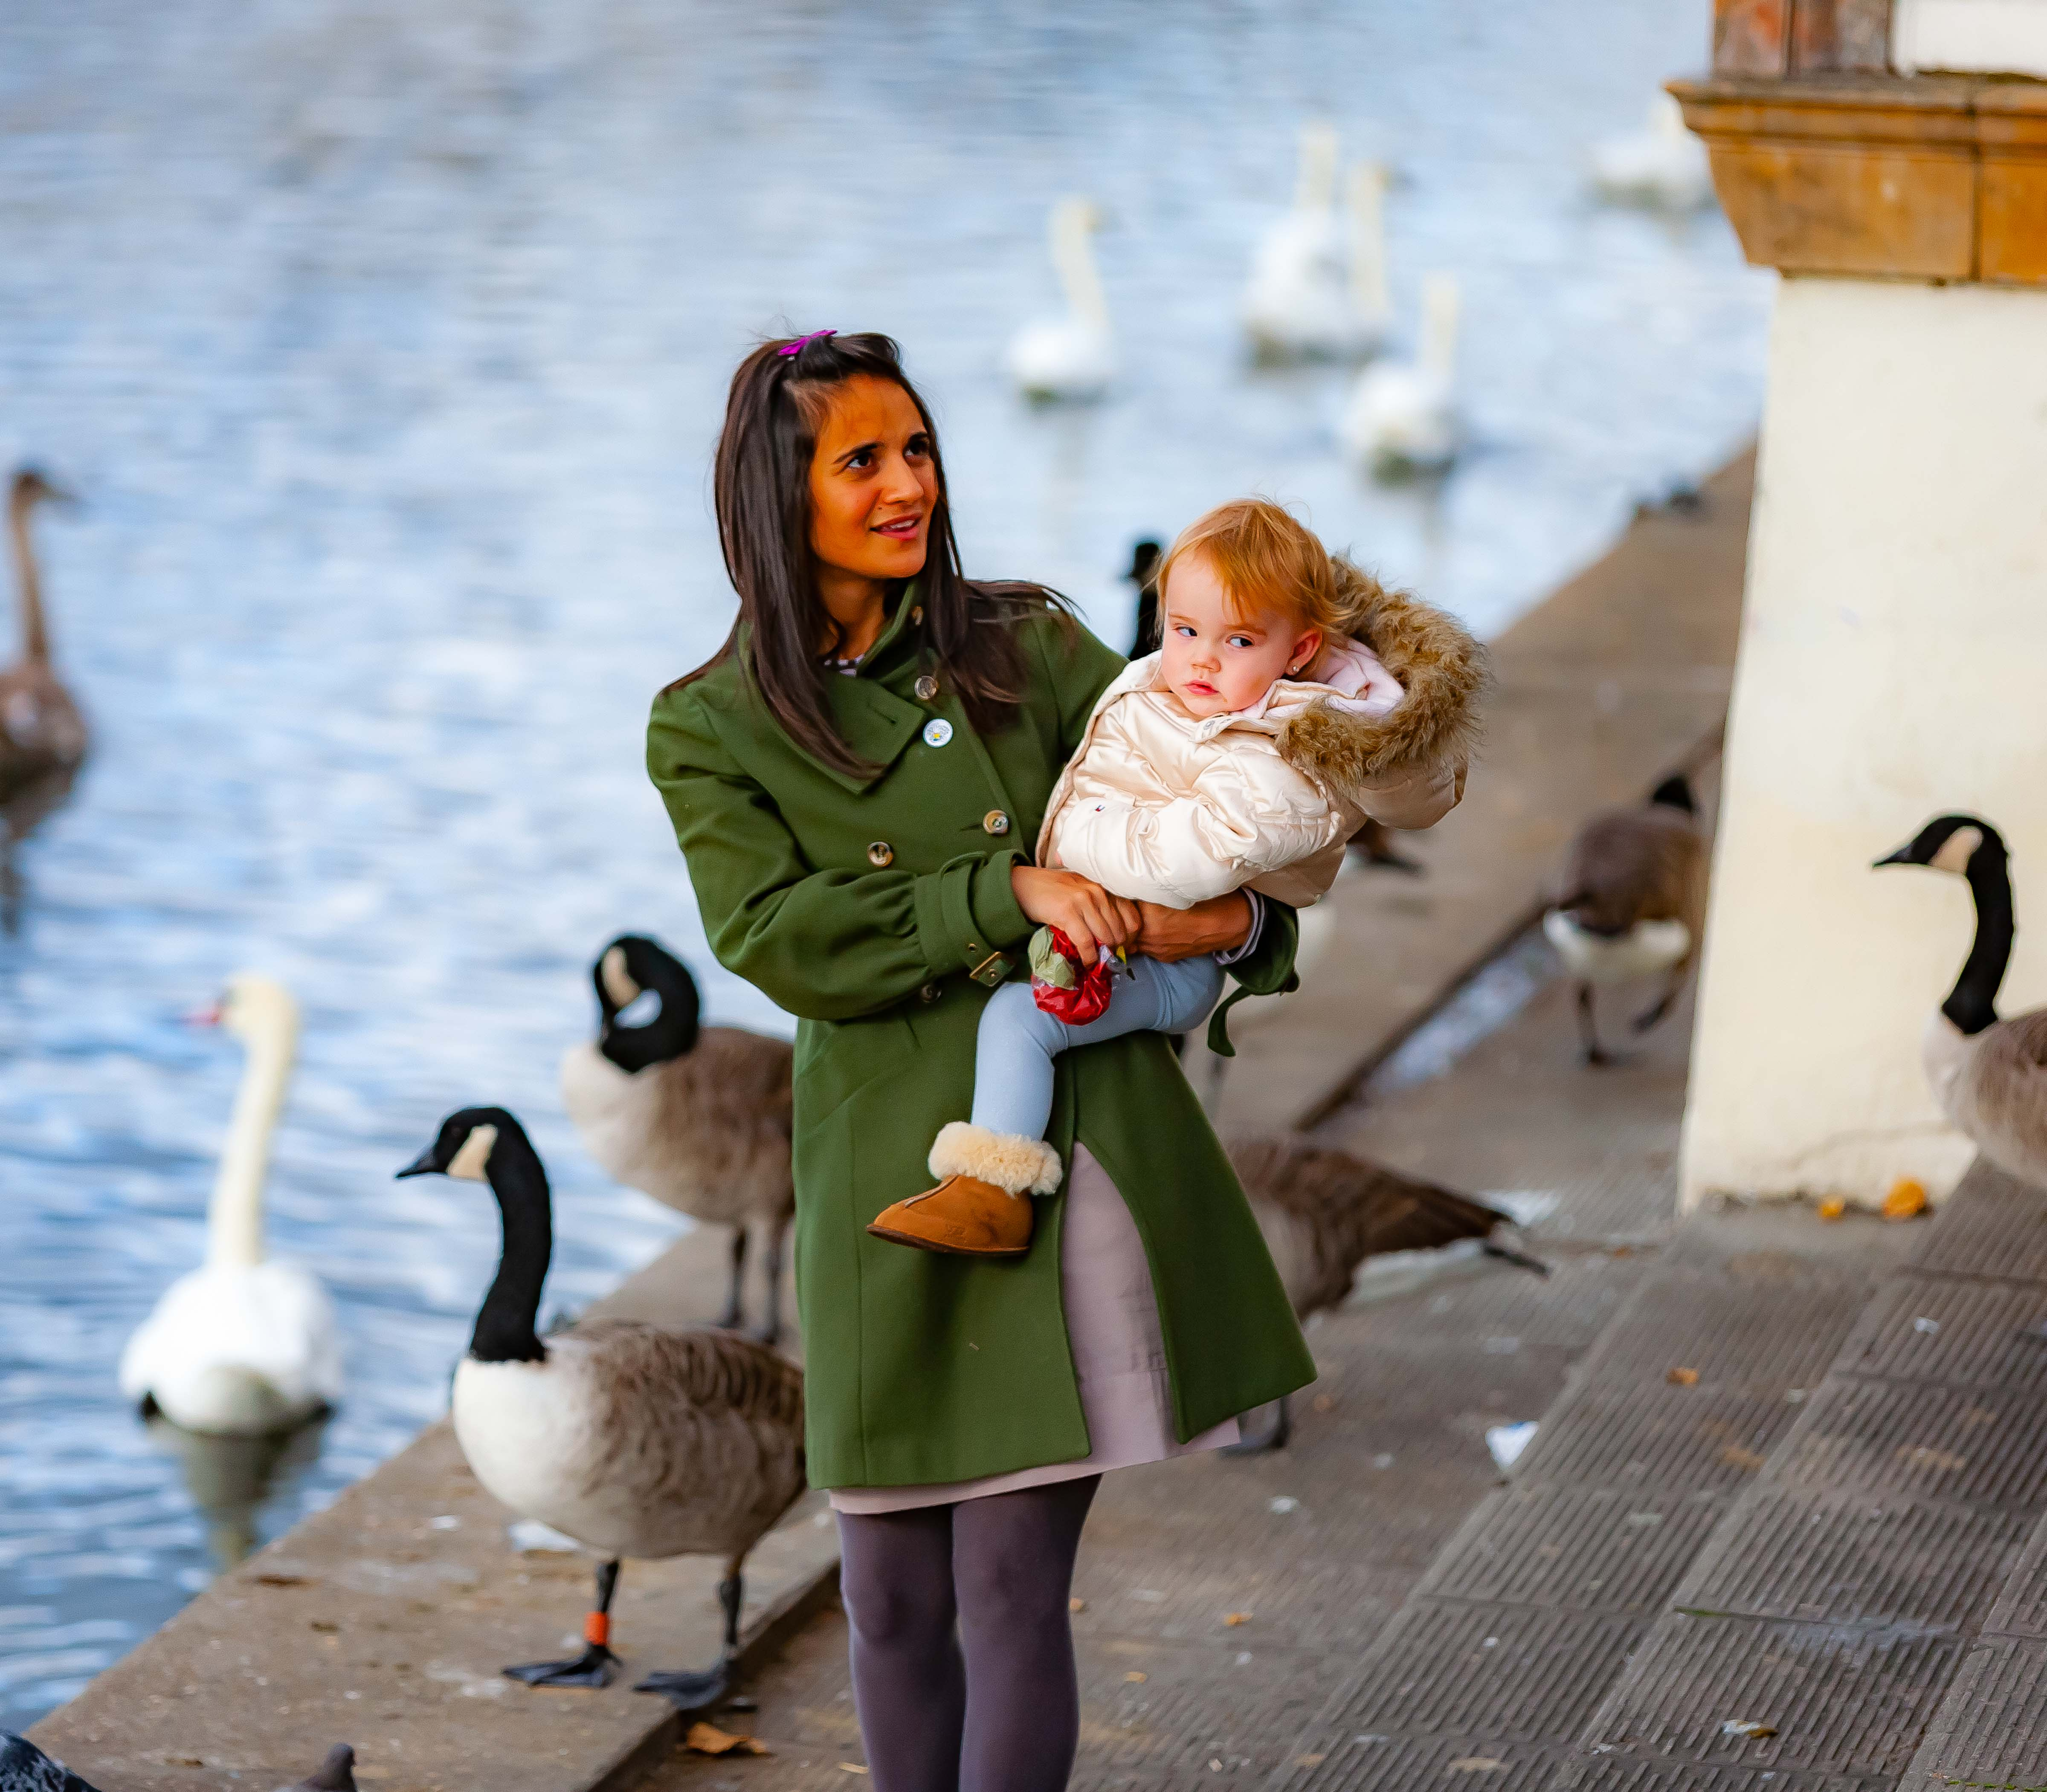 UK, Kingston upon Thames (London) Prov, Mother Child And Swans, 2009, IMG 3749